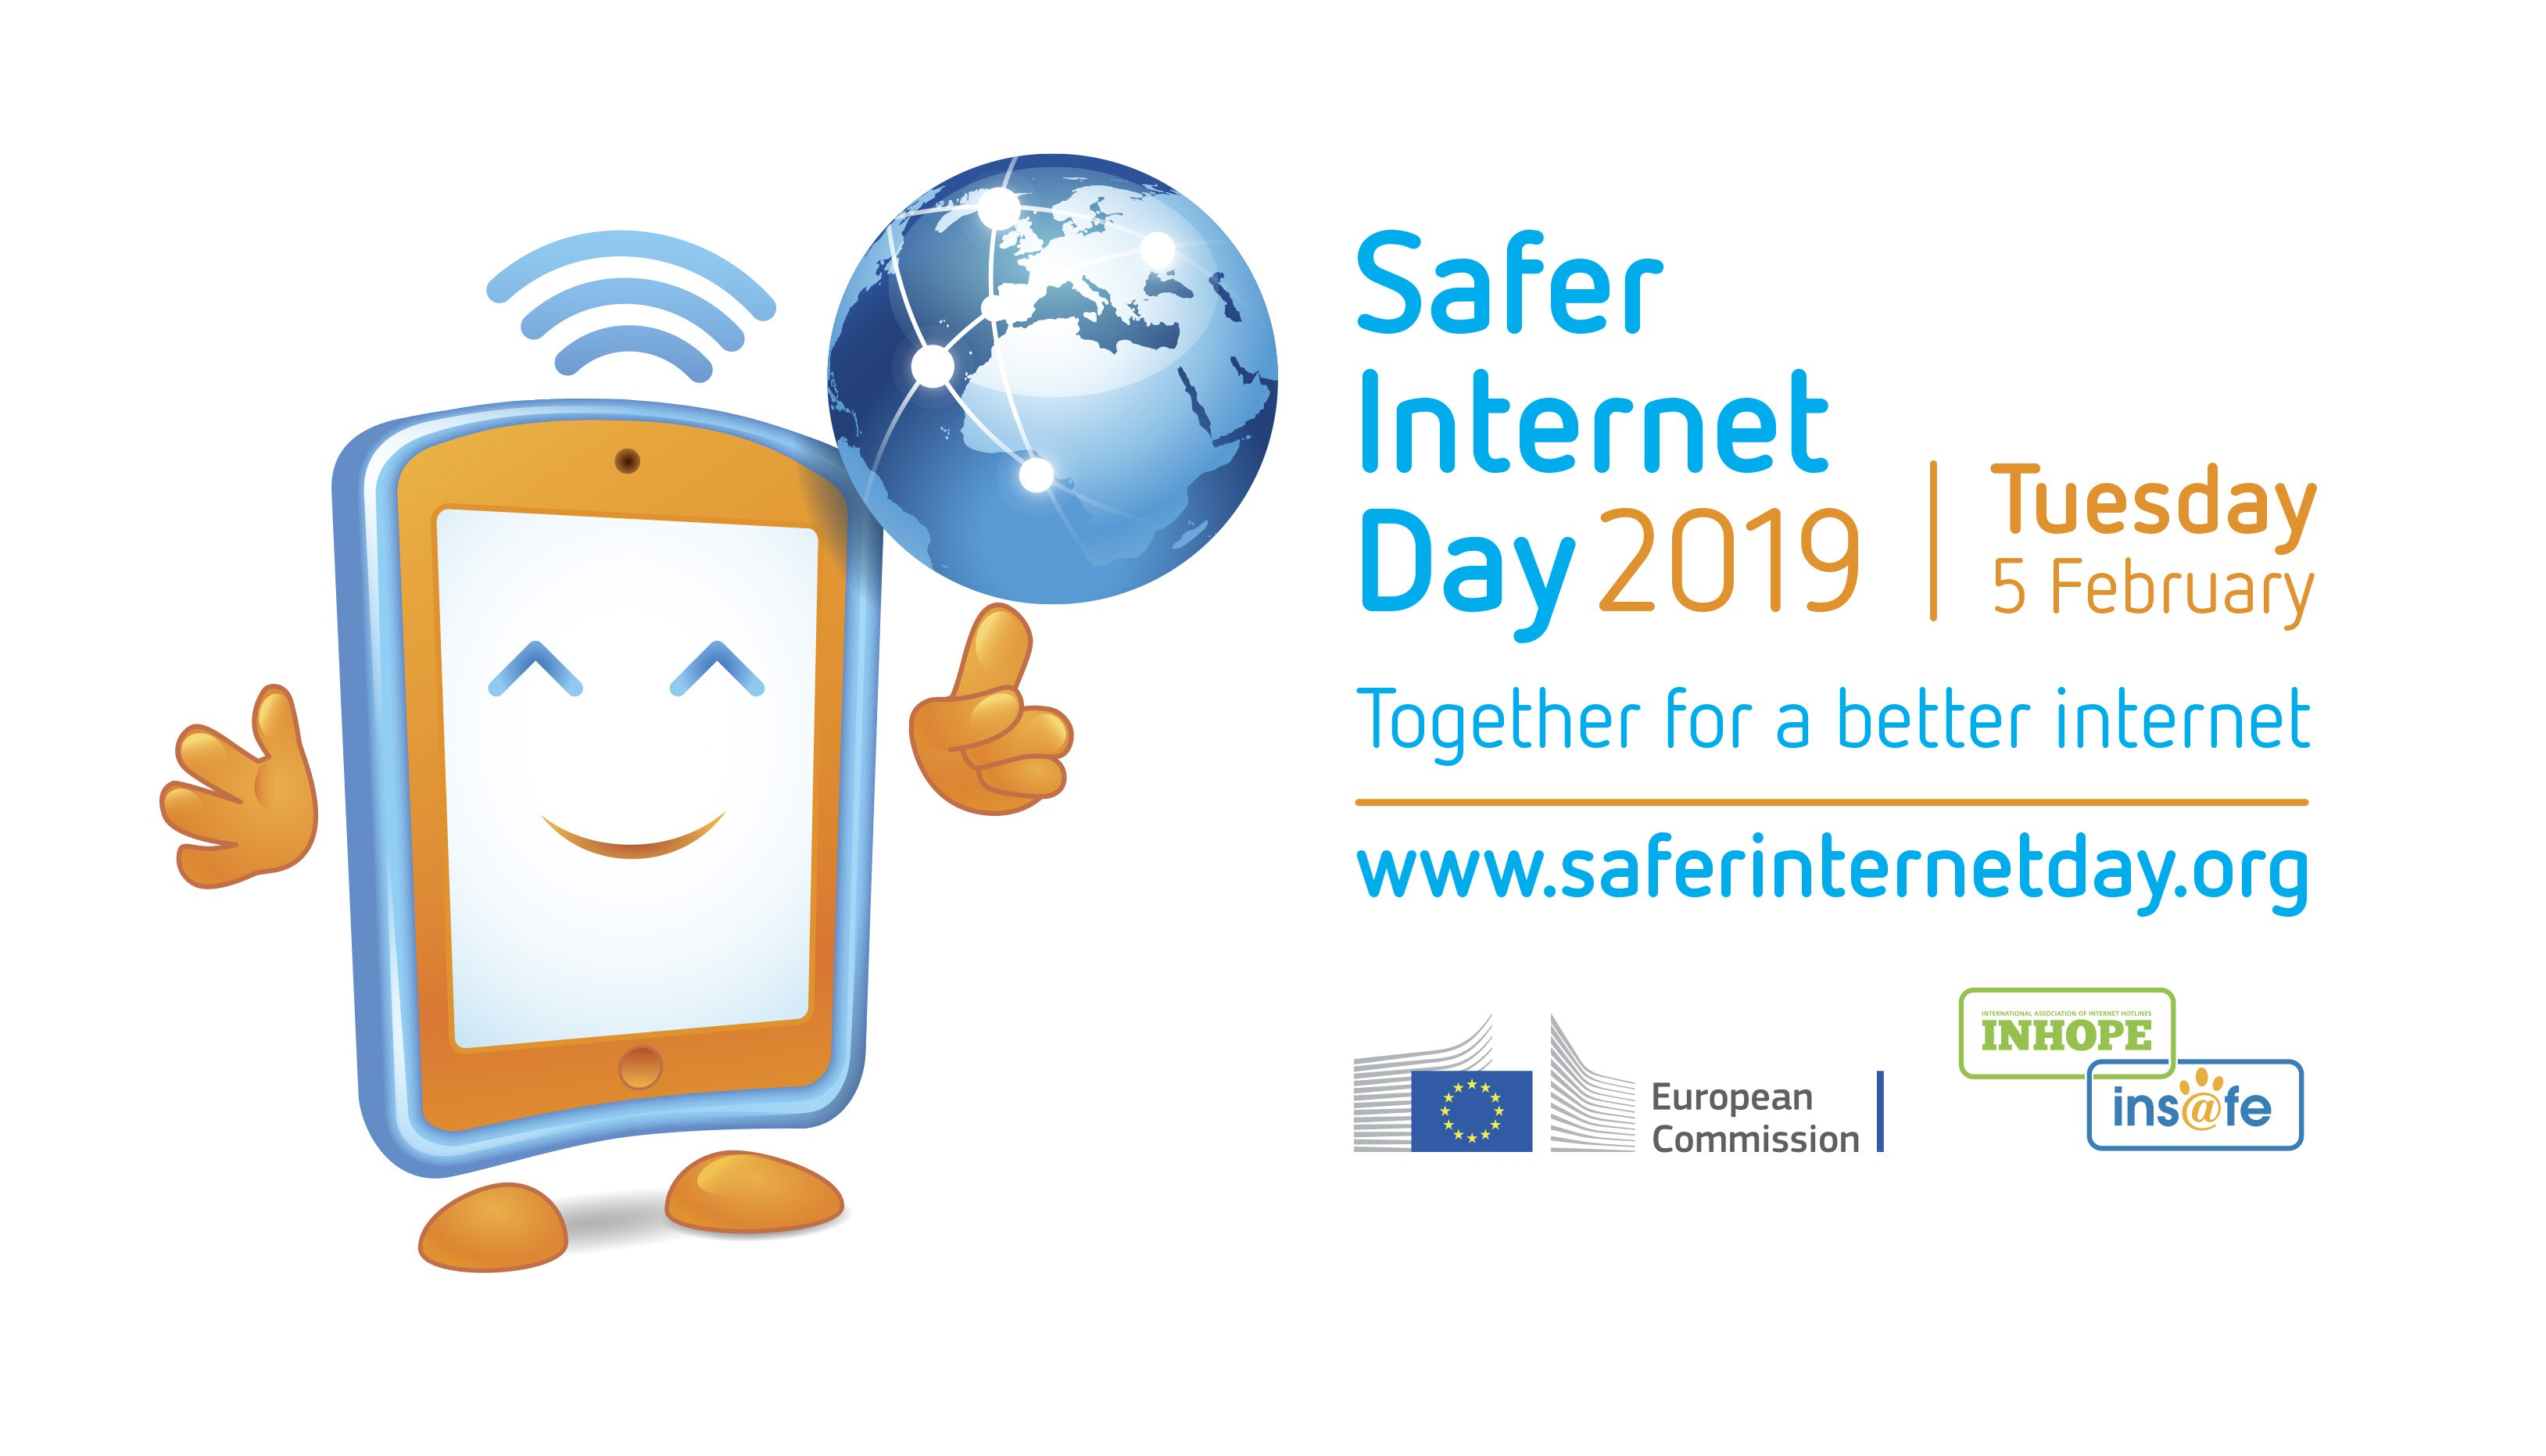 Calendario 2019 Inter Más Populares Safer Internet Day Home Of Calendario 2019 Inter Más Recientemente Liberado sorteggio Calendario Serie A 2018 2019 Lazio Napoli All Esordio